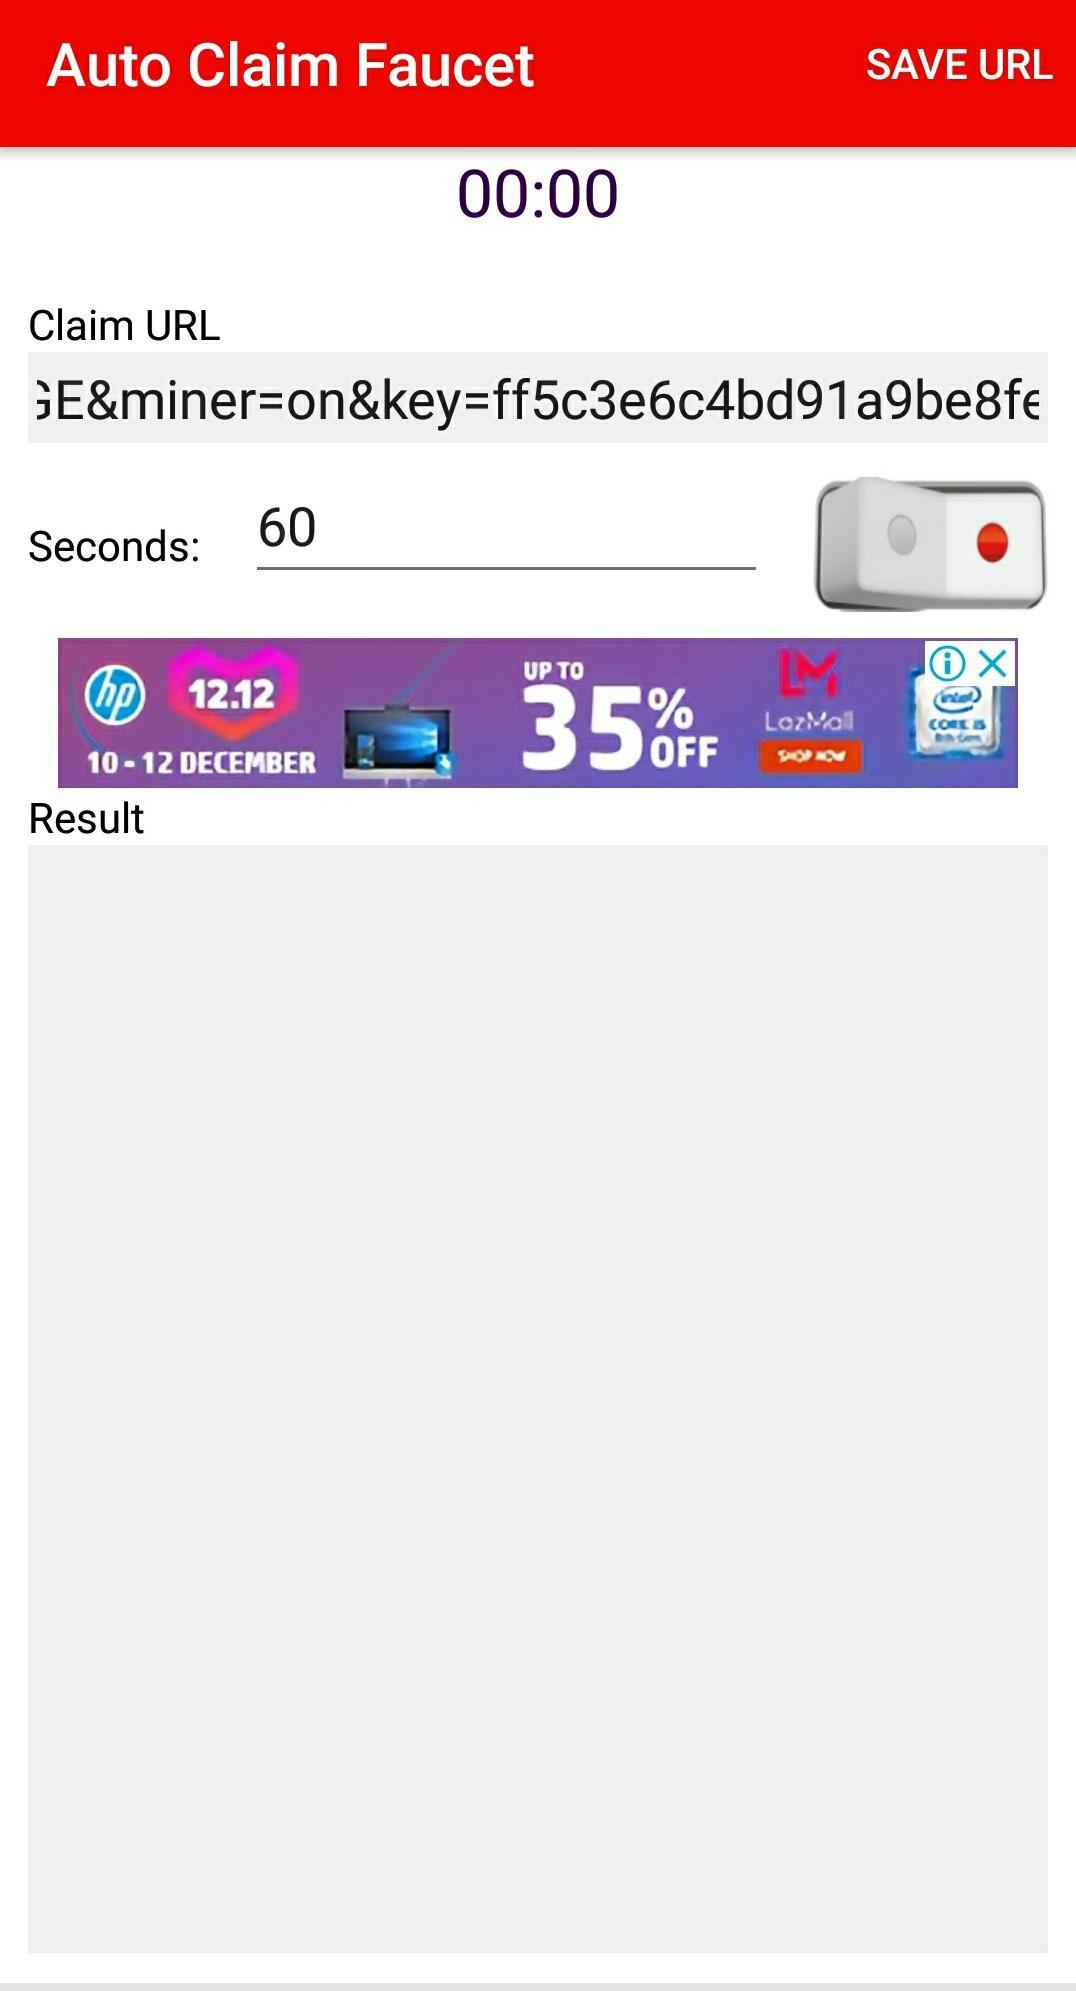 Auto Claim Faucet for Android - APK Download